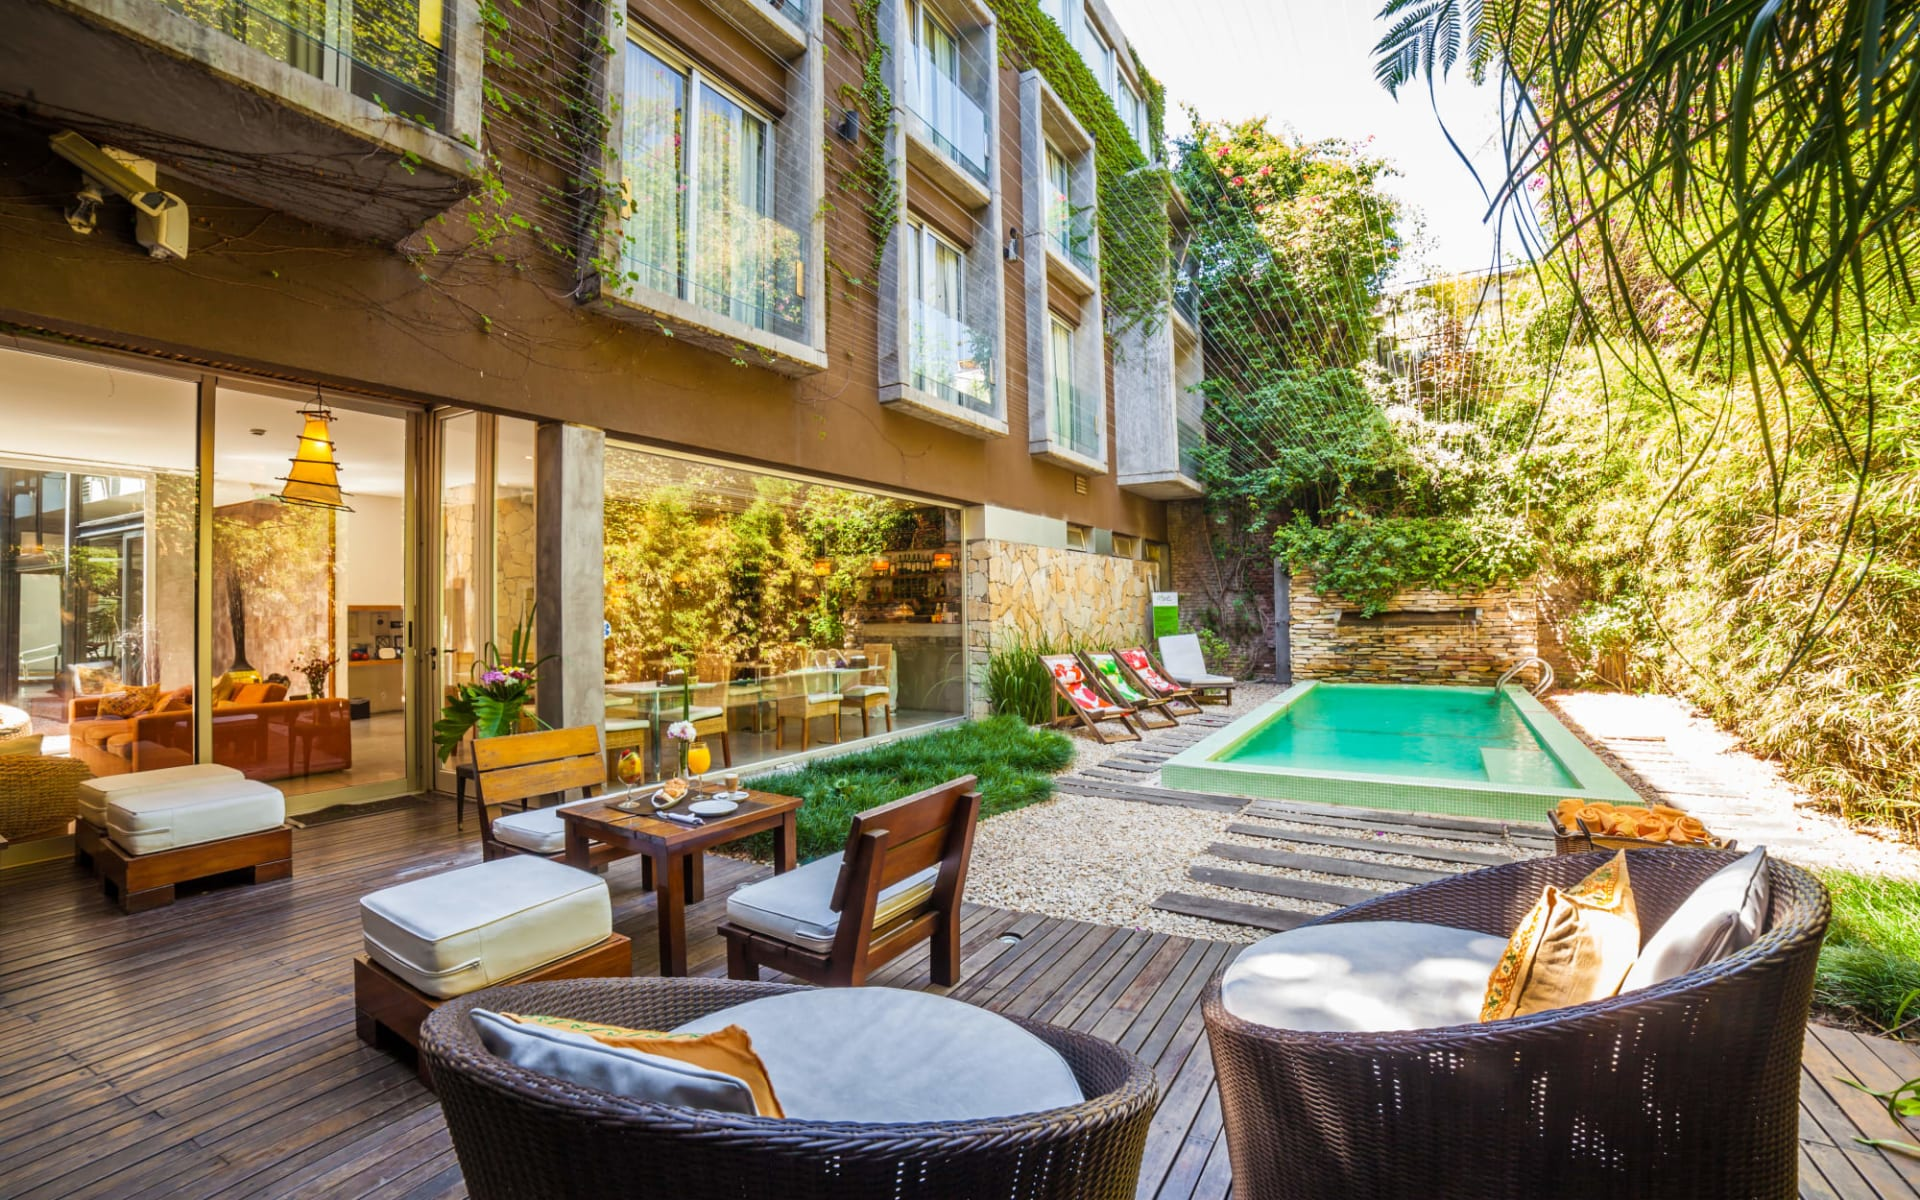 Mine Boutique Hotel in Buenos Aires:  Mine Boutique Hotel Buenos Aires - Sitzplatz mit Pool